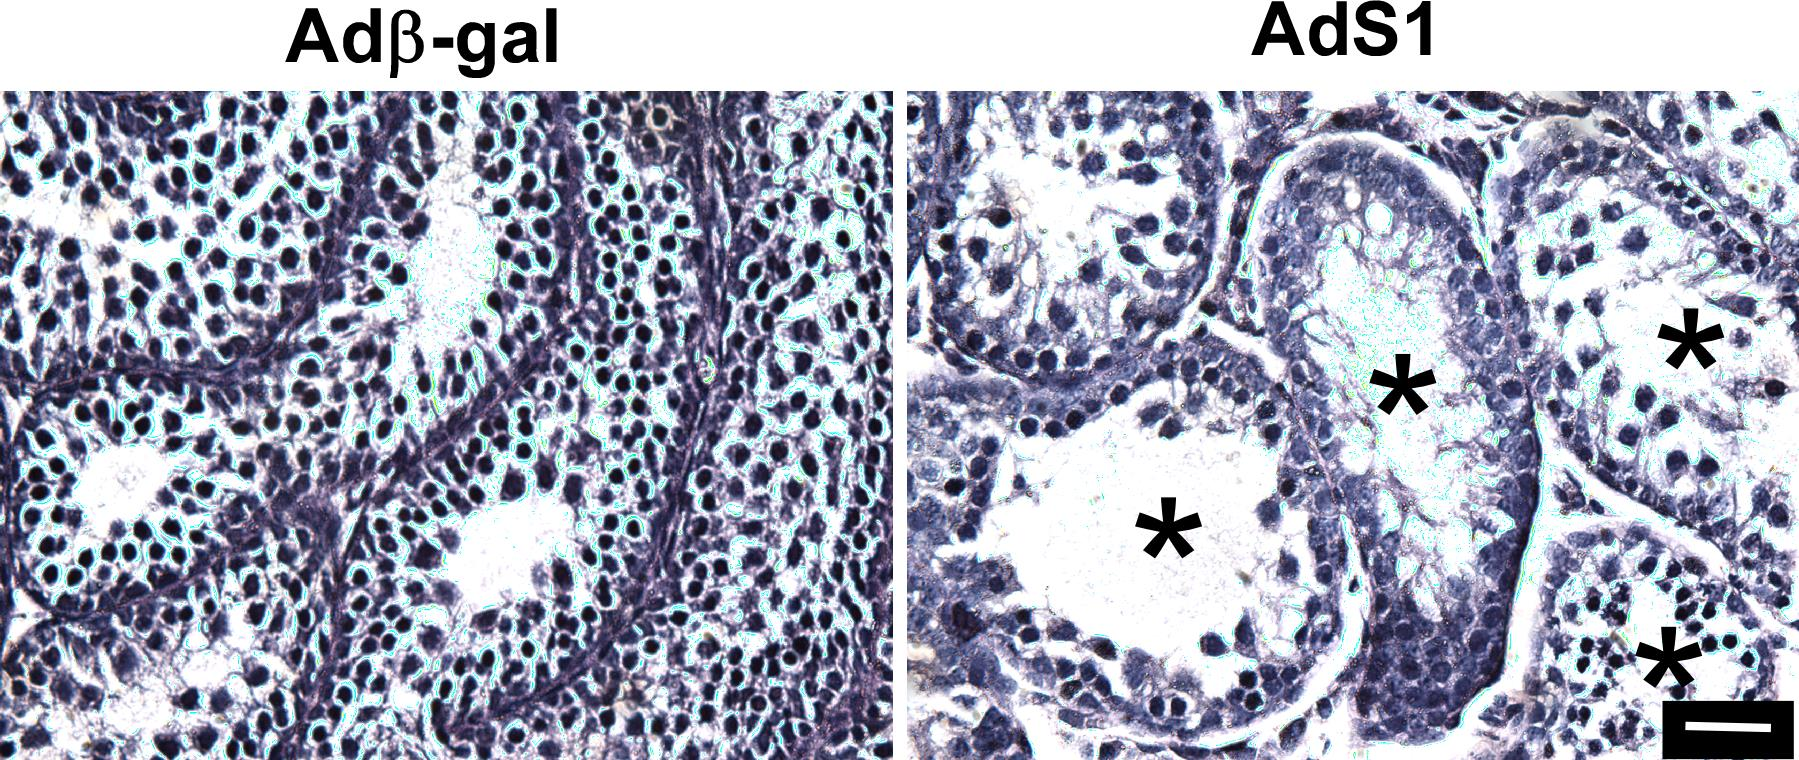 Mouse Spermatogenesis Requires Classical and Nonclassical